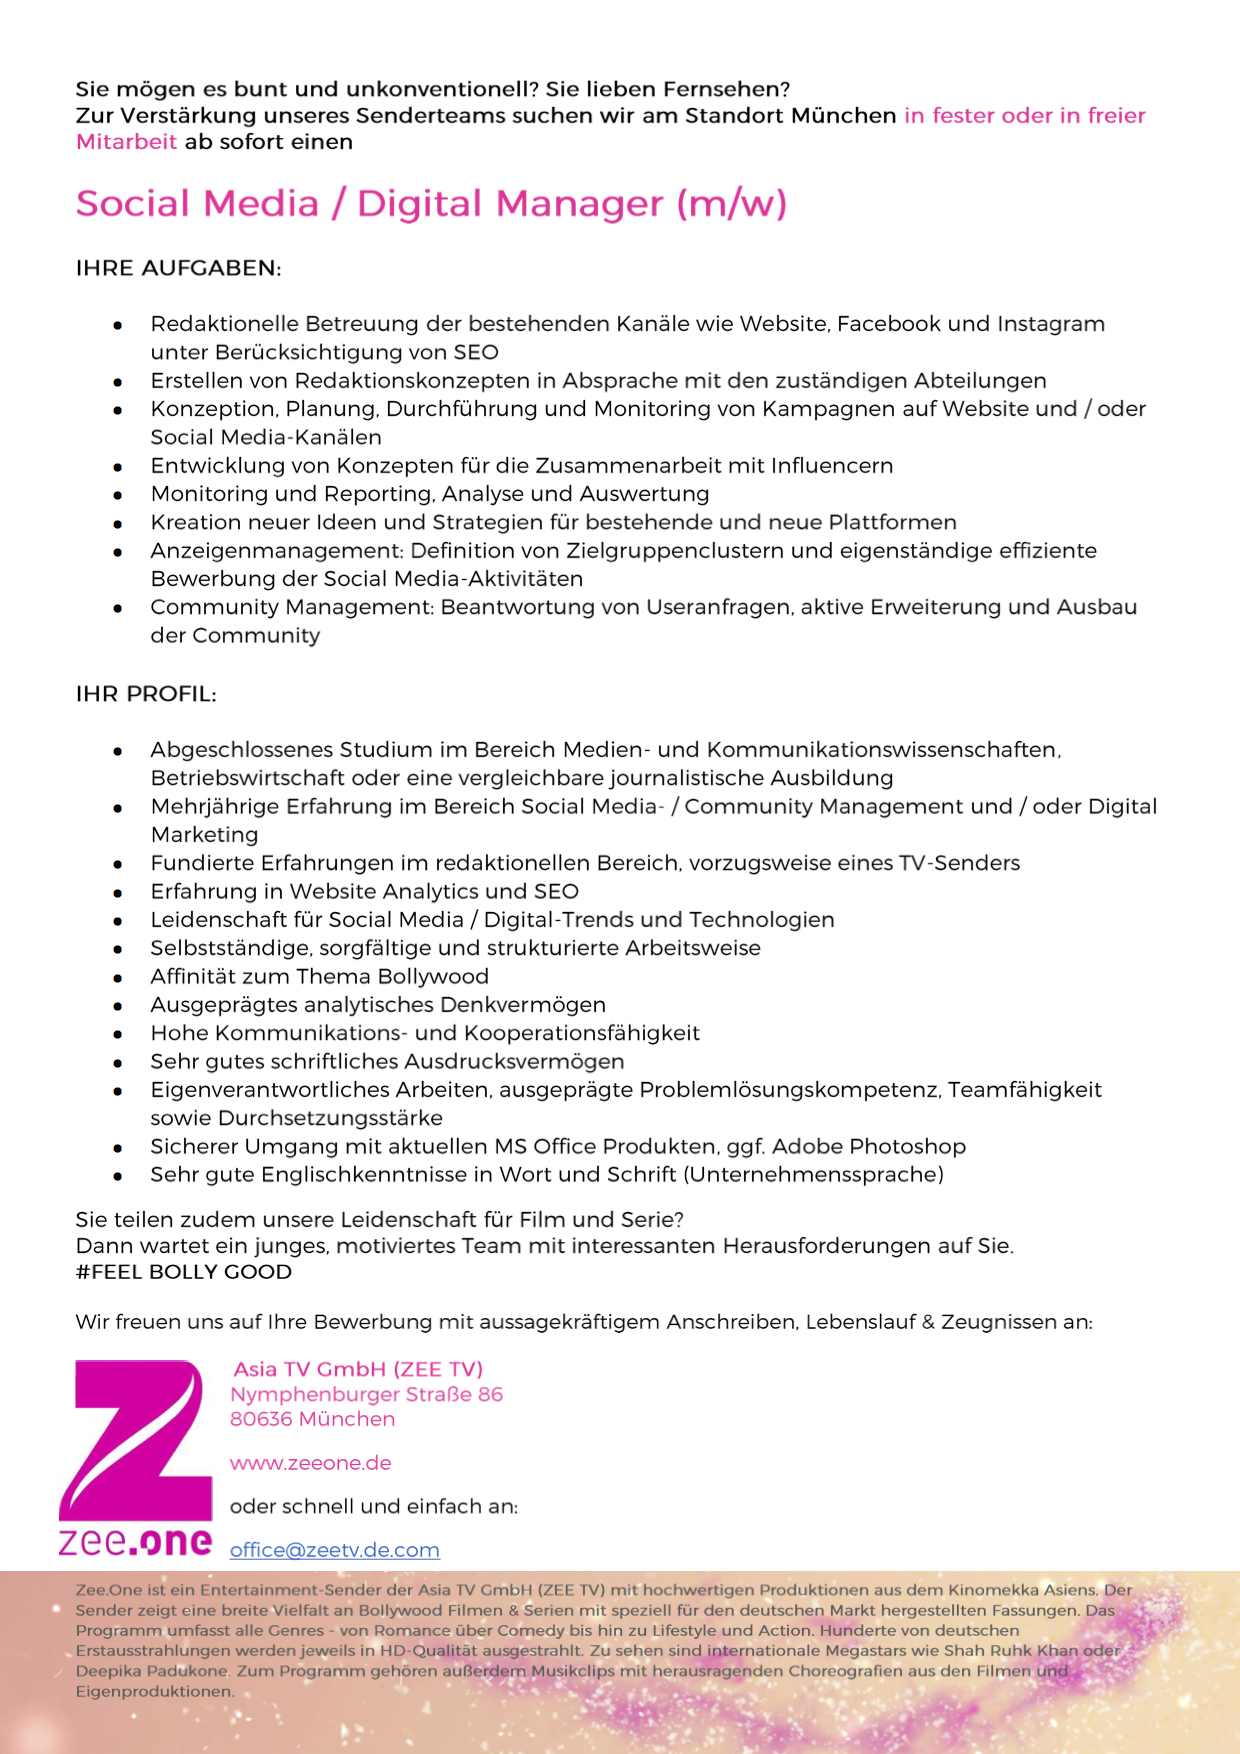 Social Media / Digital Manager (m/w)